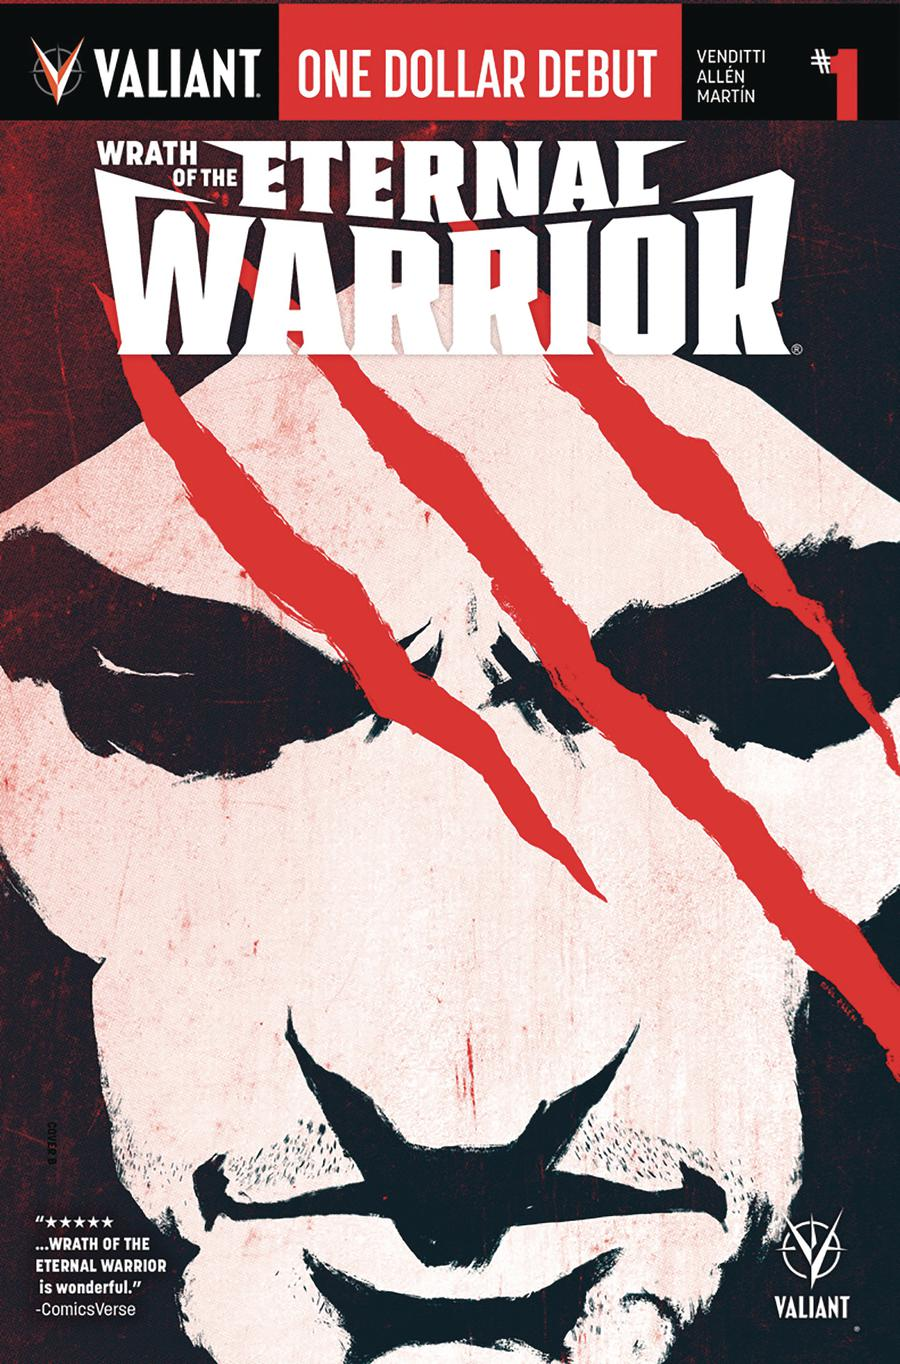 Wrath Of The Eternal Warrior #1 Cover J One Dollar Debut Edition